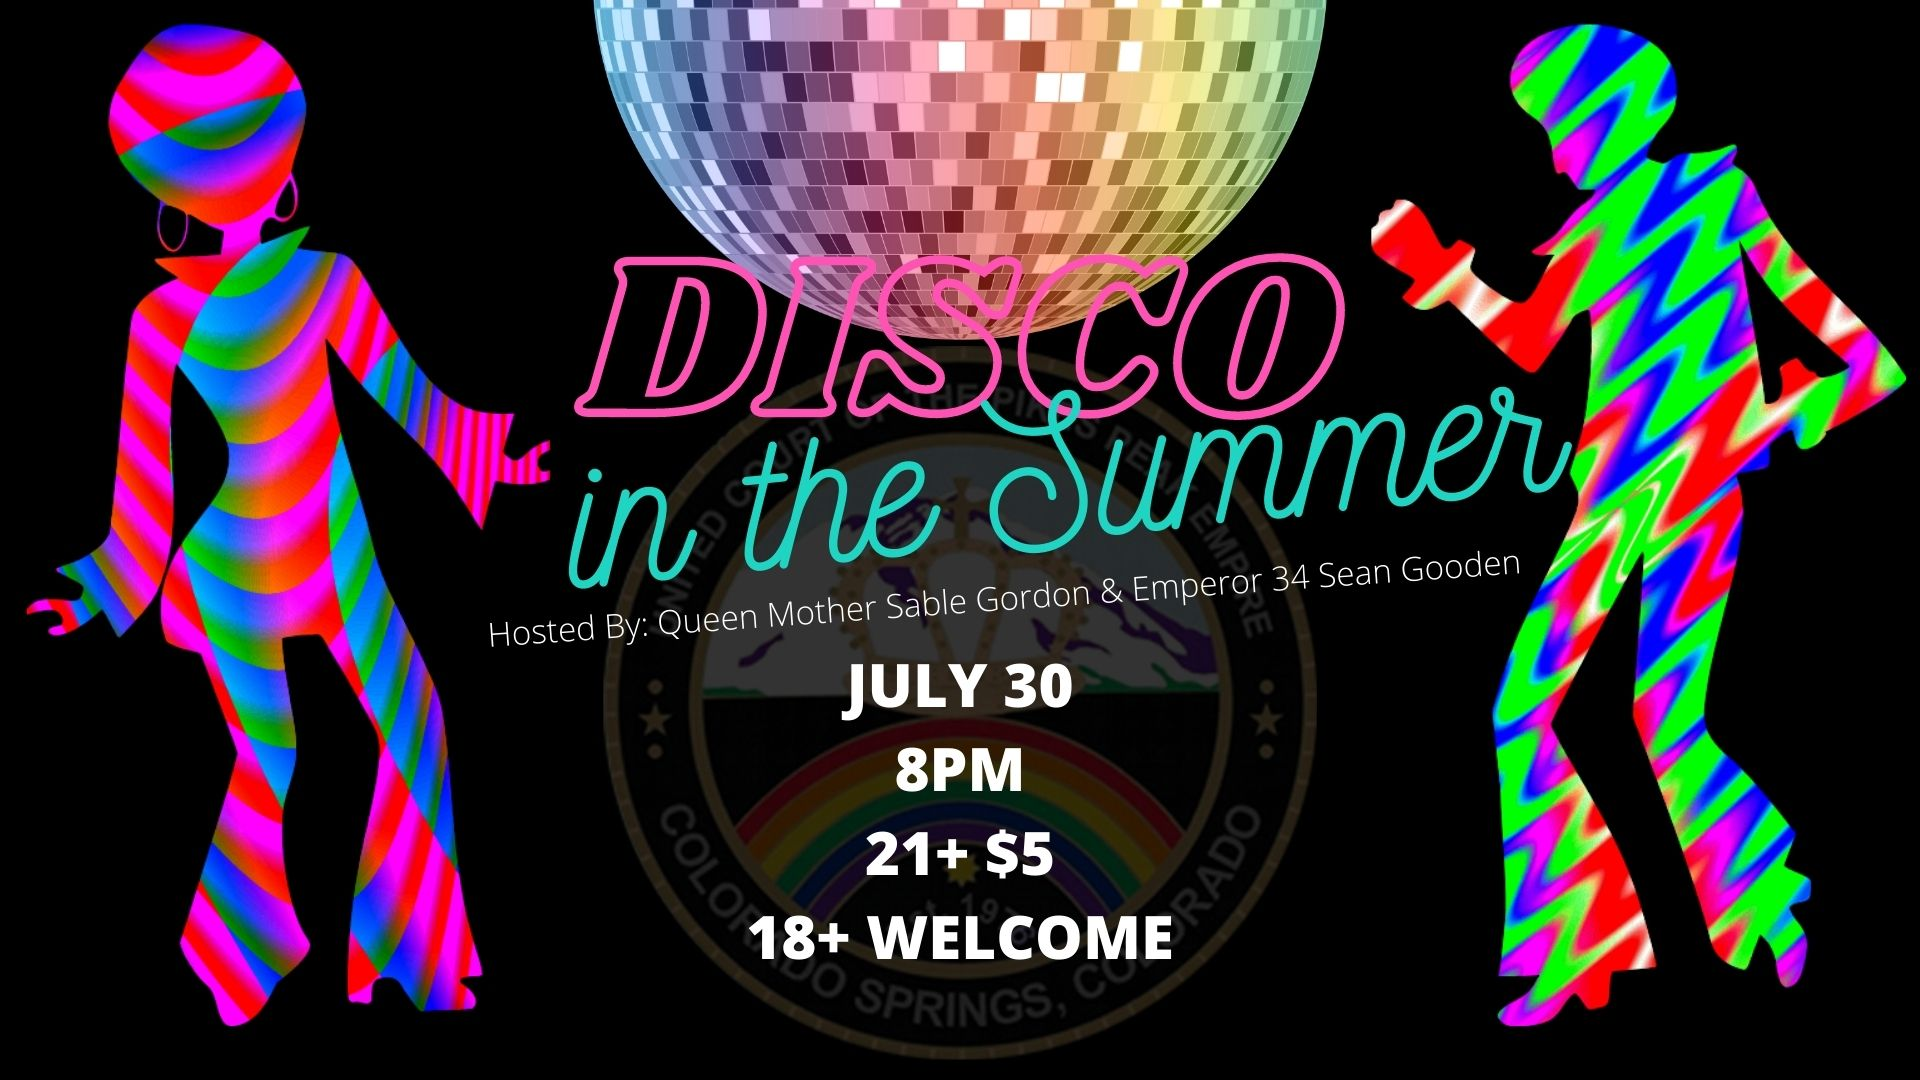 disco in the summer